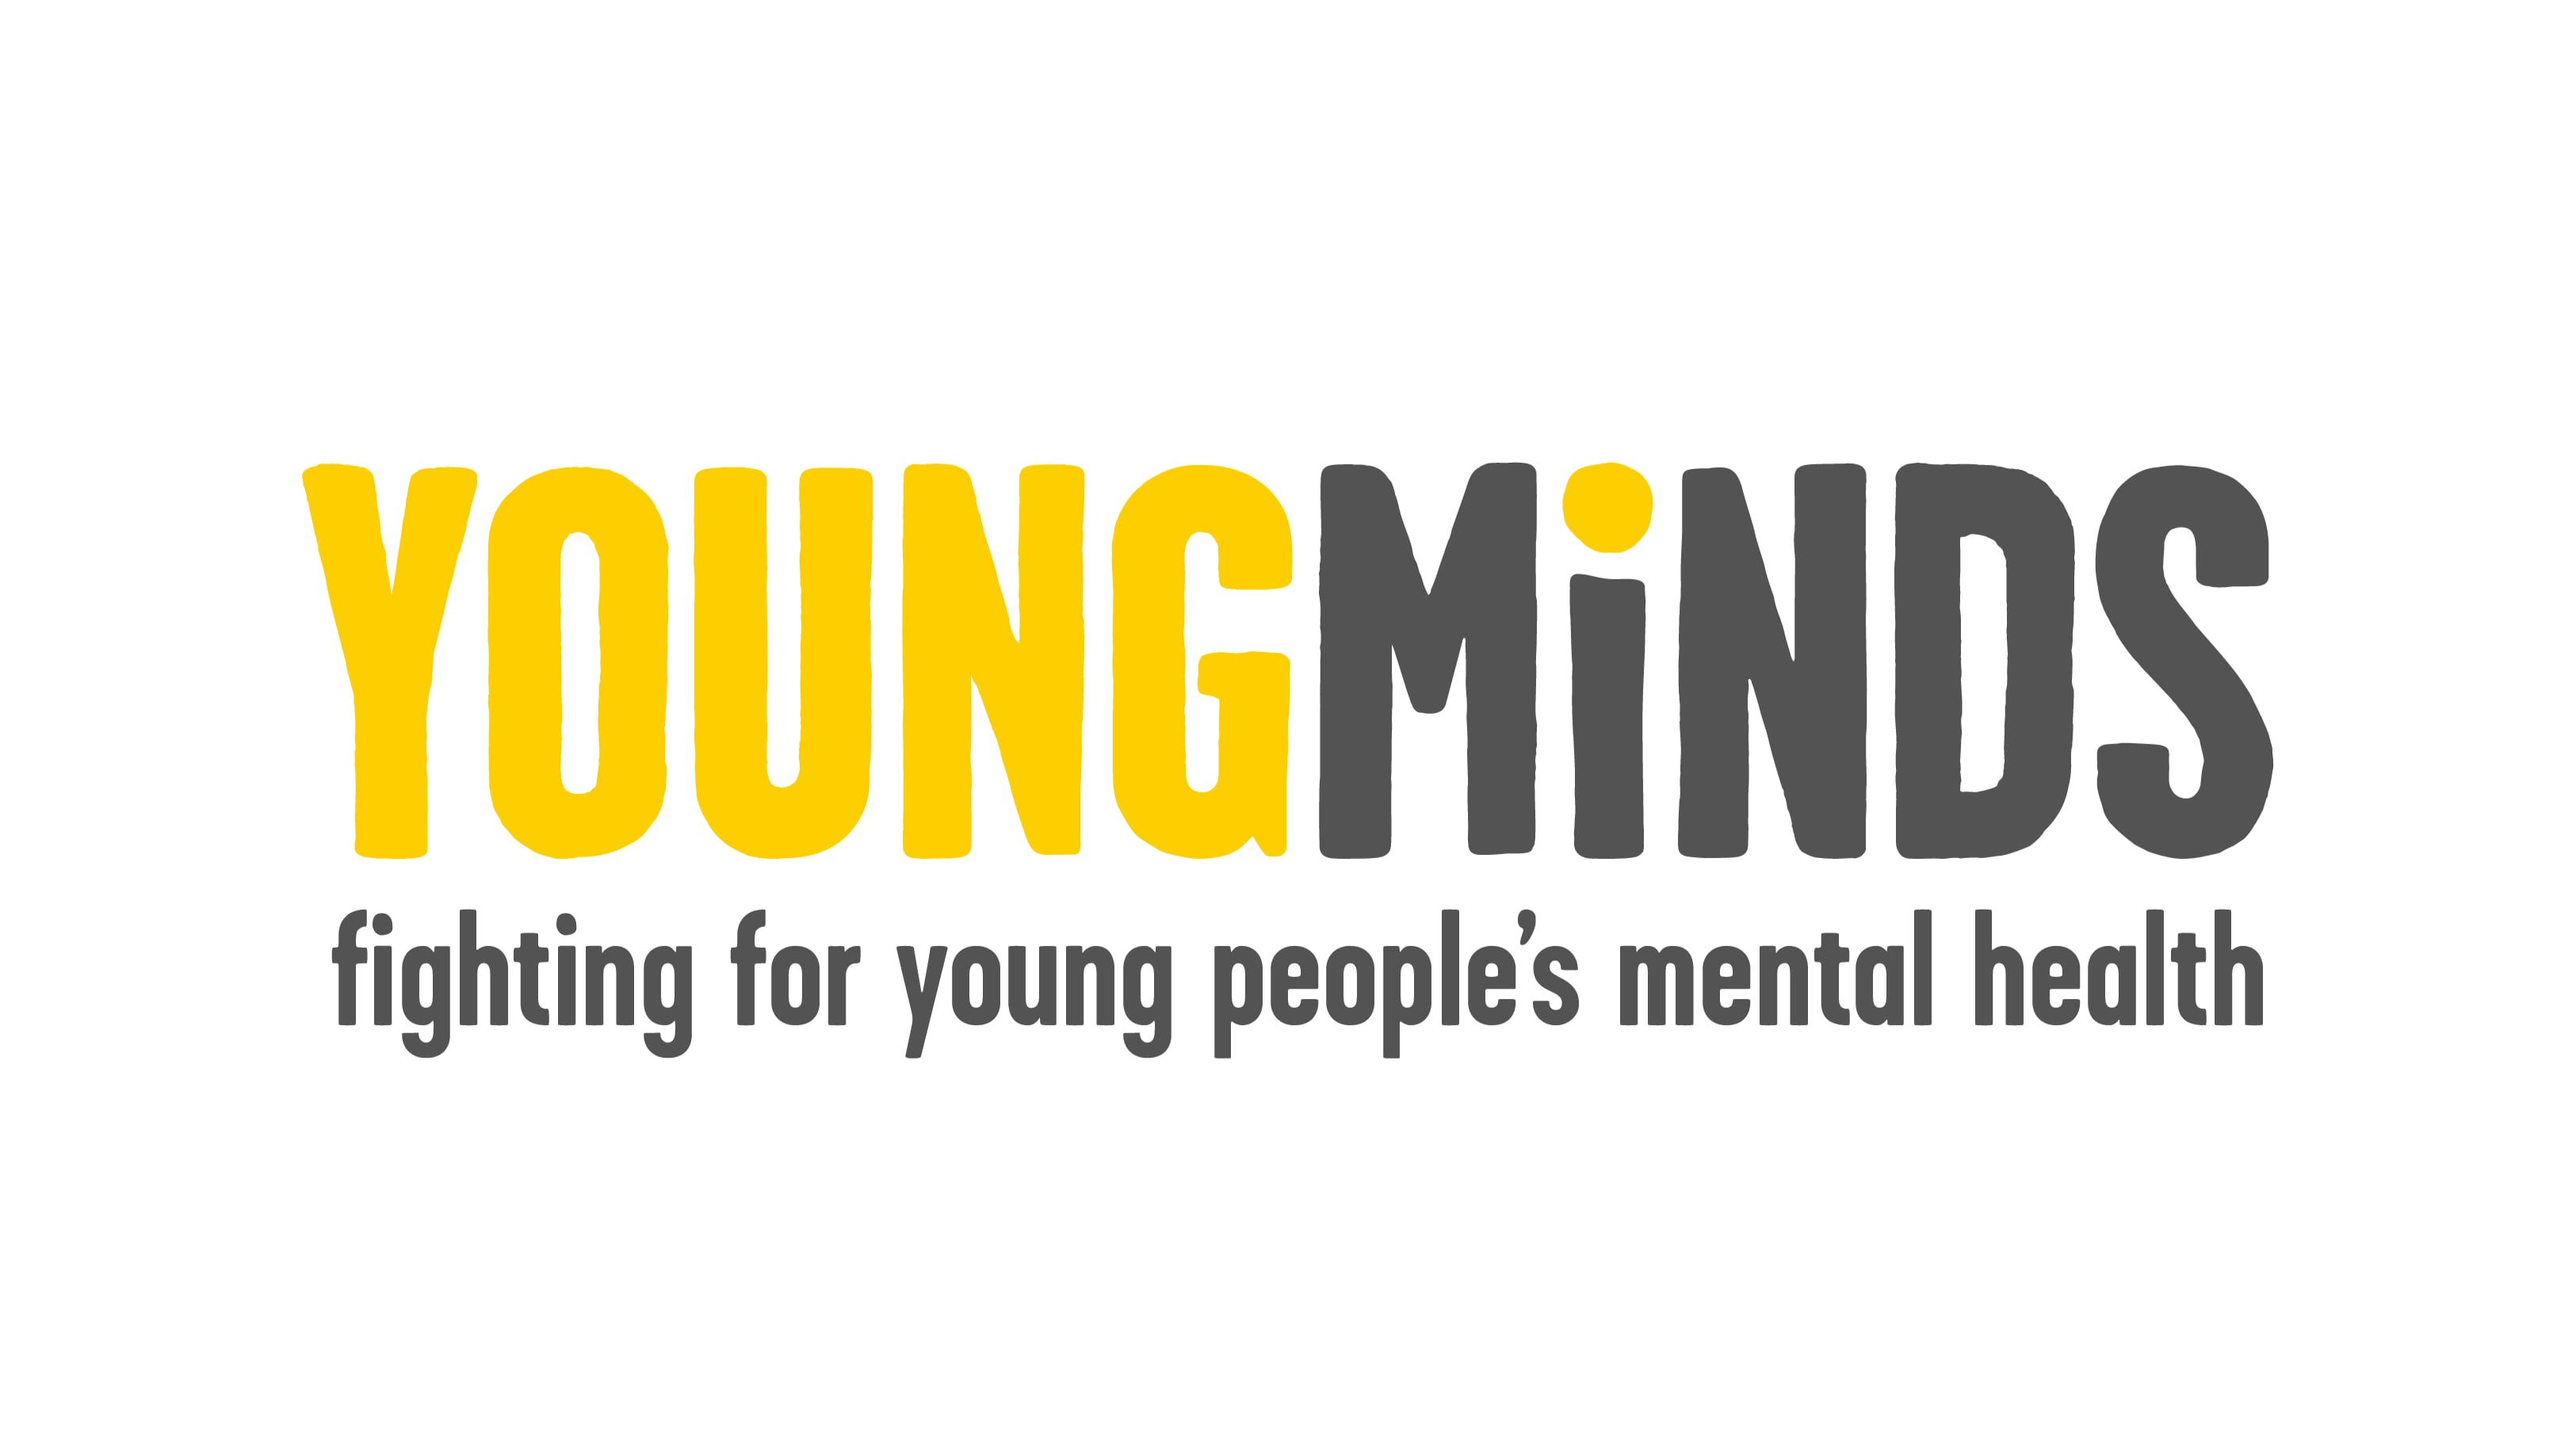 Youngminds - Freedom To Exist - Watch sales for charity